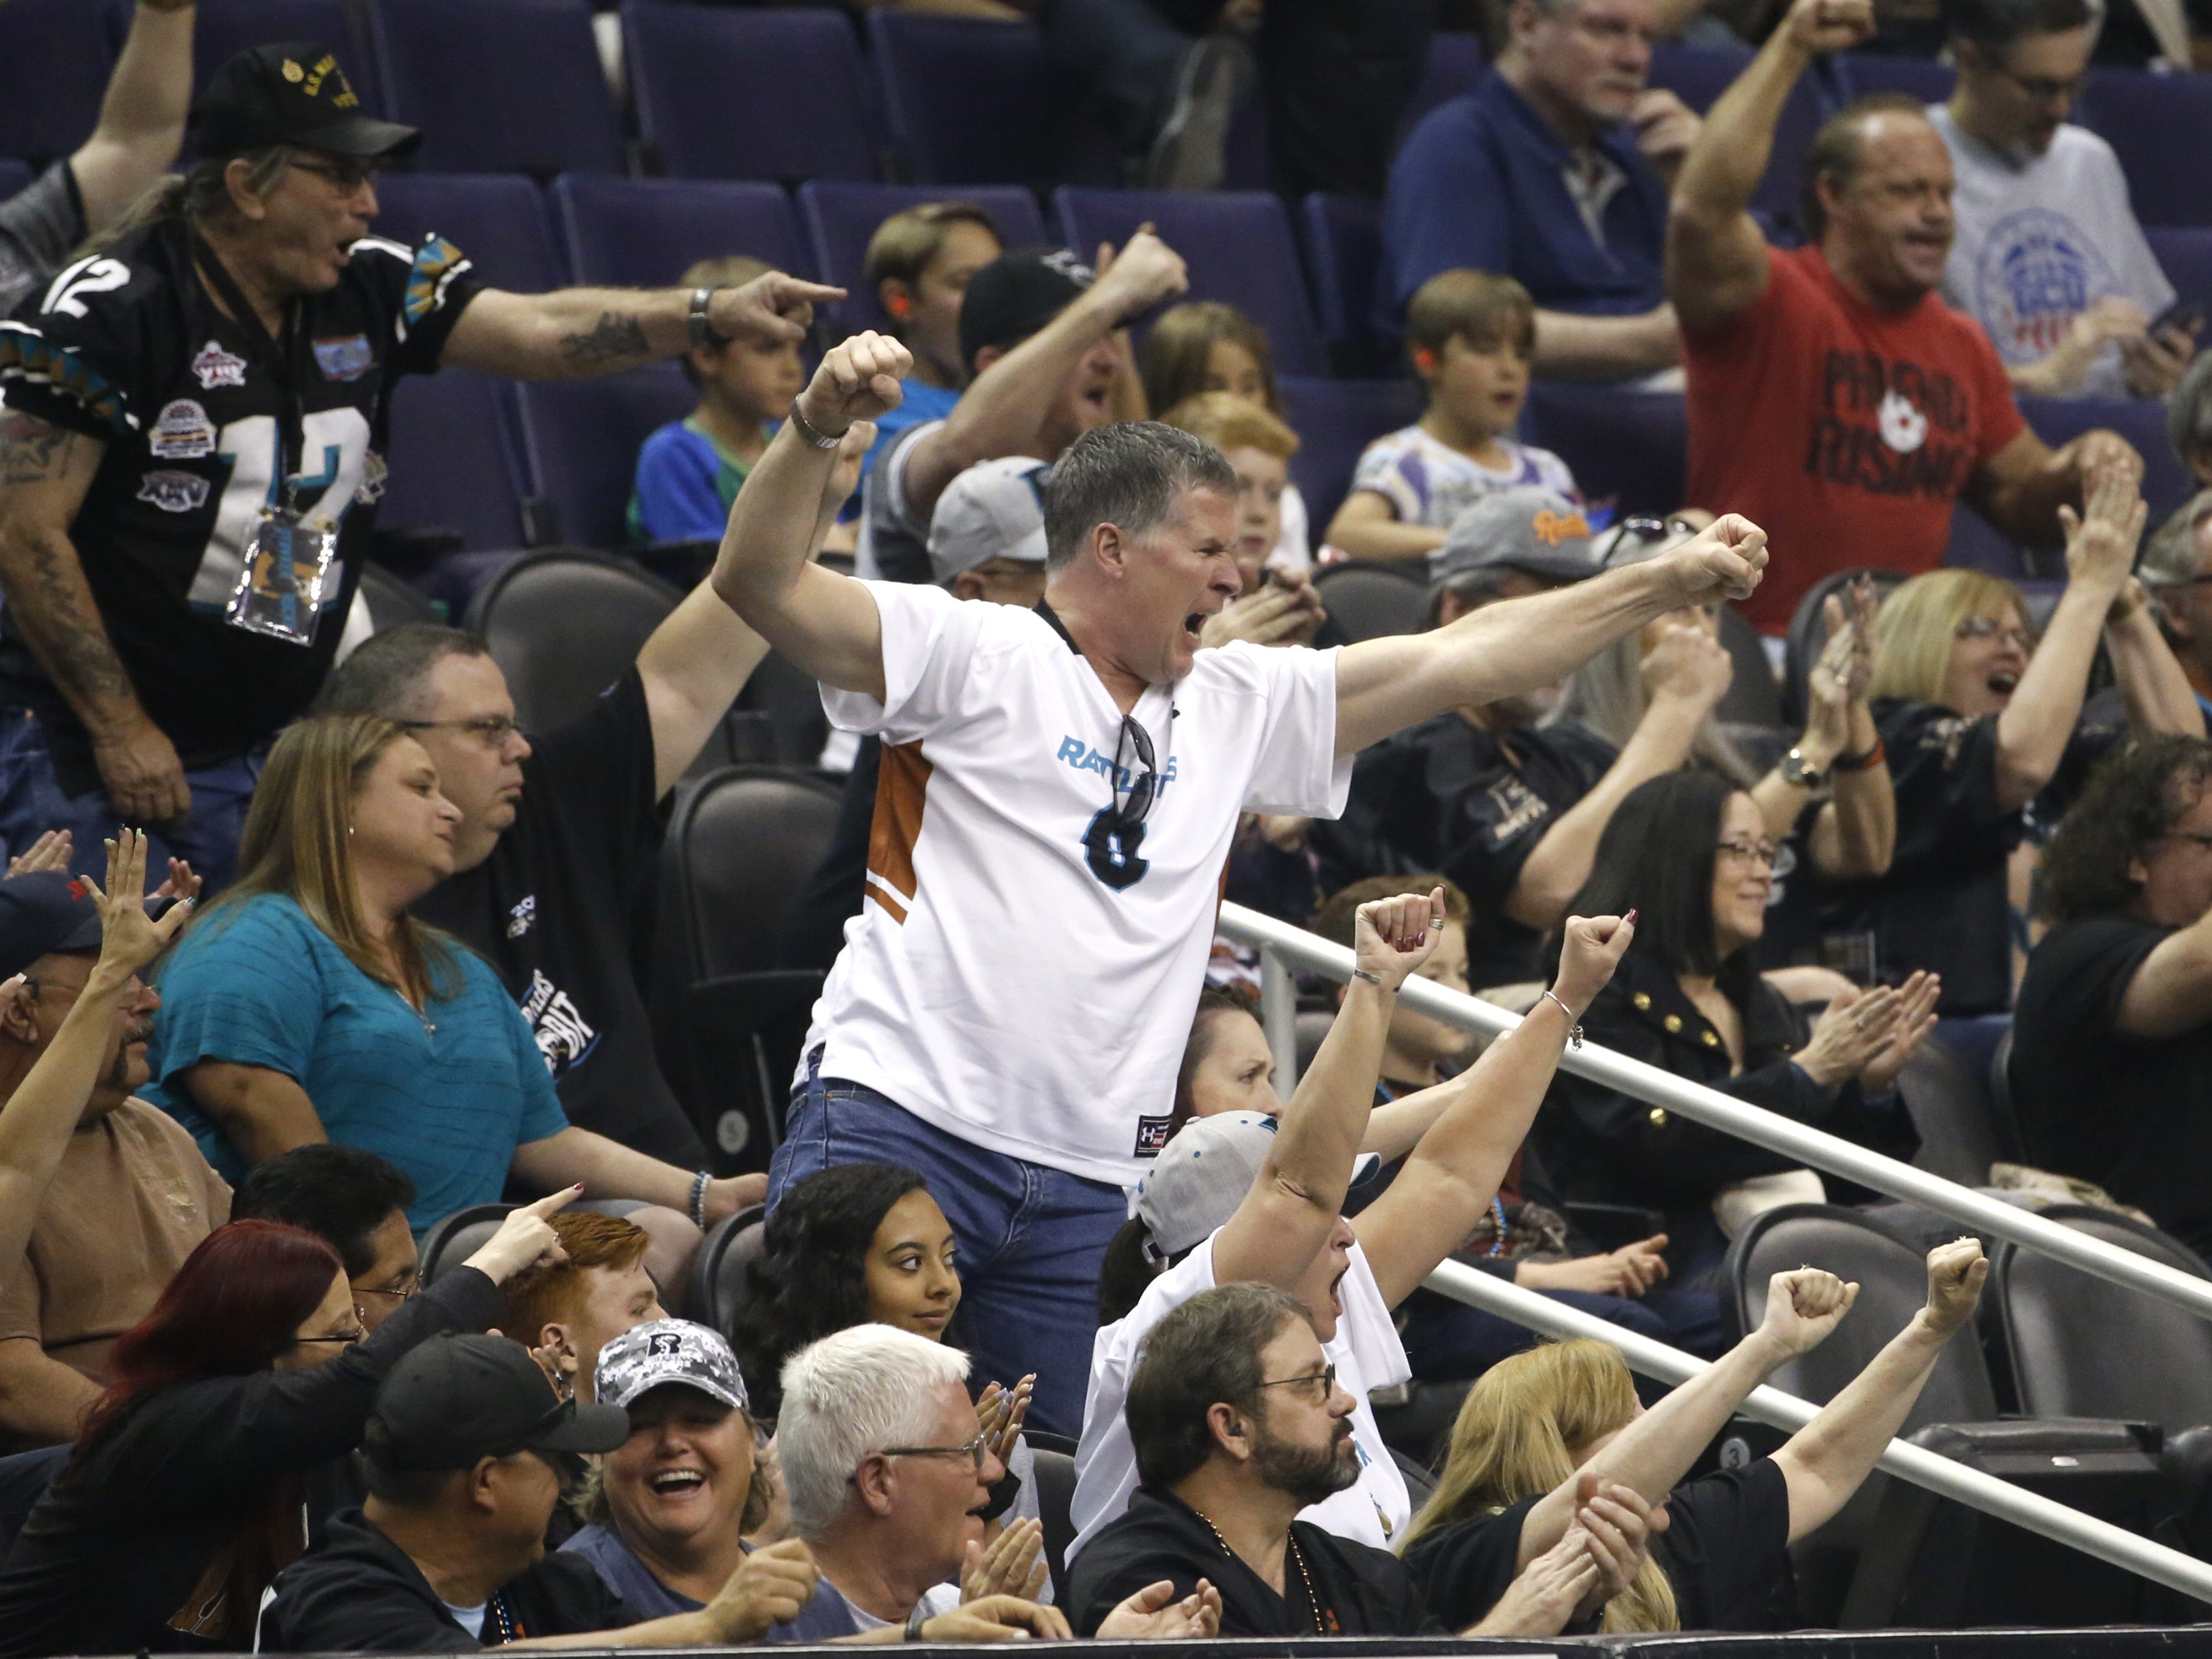 Rattlers fans react to a turnover against the Sugar Skulls during the first half at Talking Stick Resort Arena in Phoenix, Ariz. on March 16, 2019.